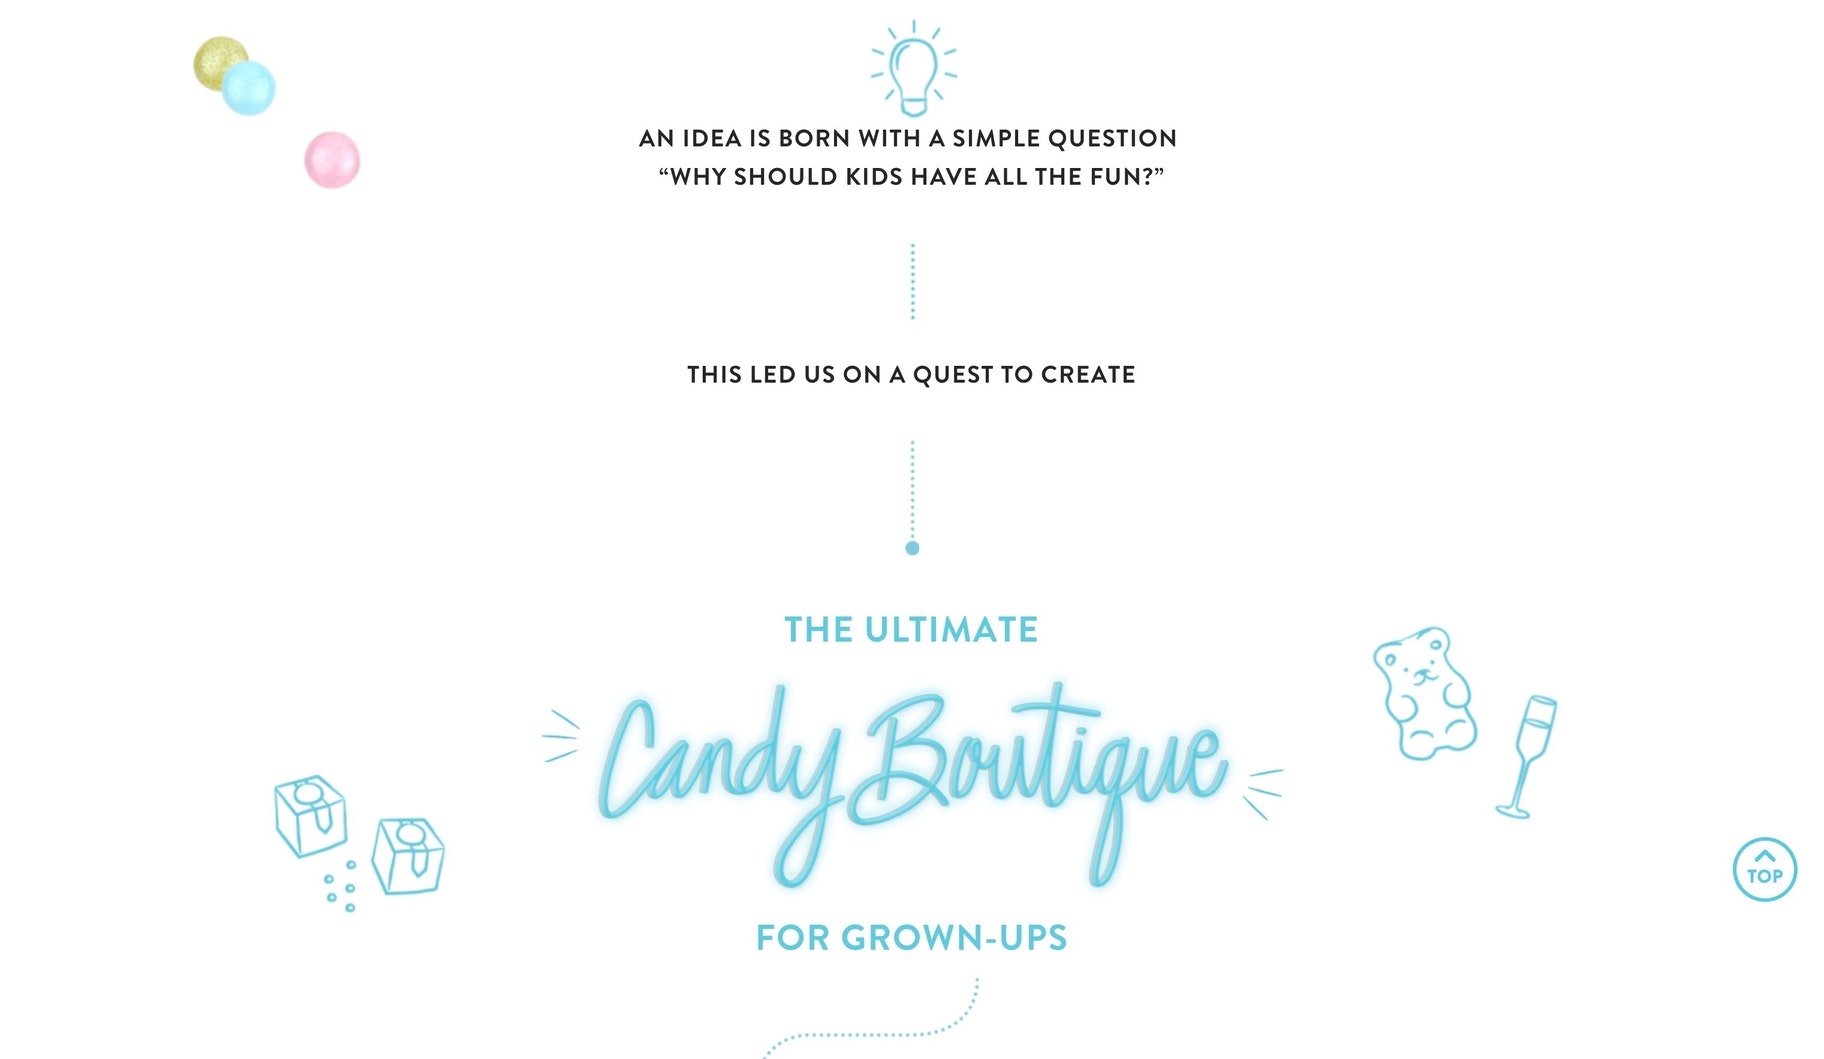 The Ultimate Brand Boutique - Sugarfina